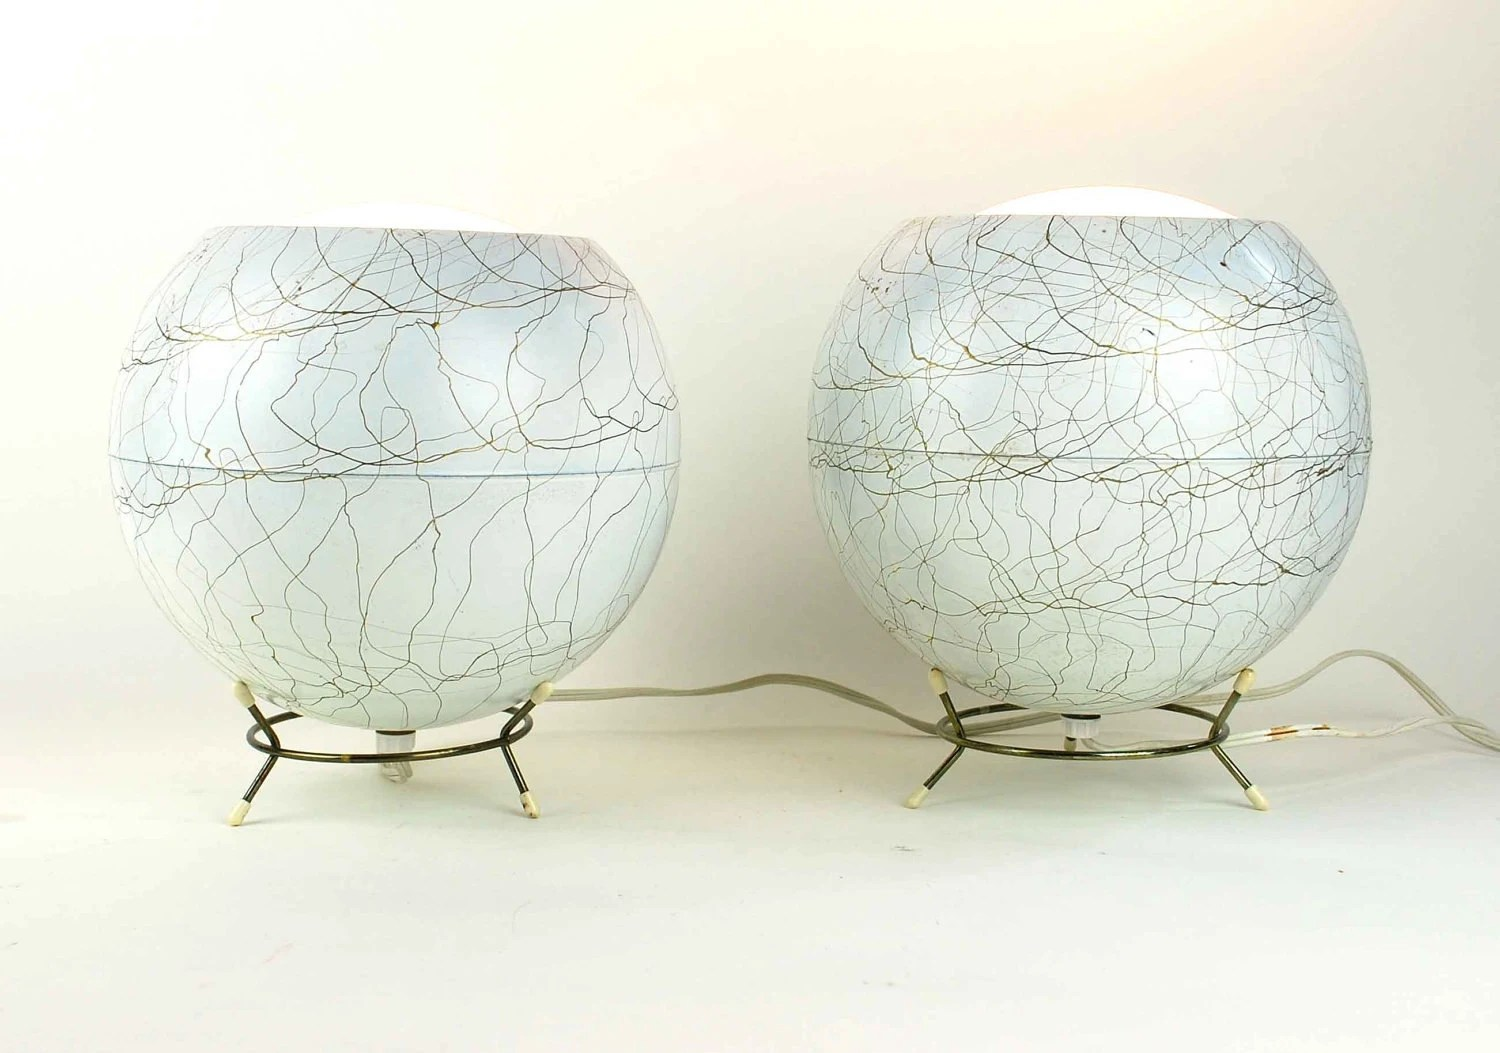 Pair of Vintage Eyeball Lamps with Original Metal Bases, White and Gold Mid-Century Orb Lights - independencevintage